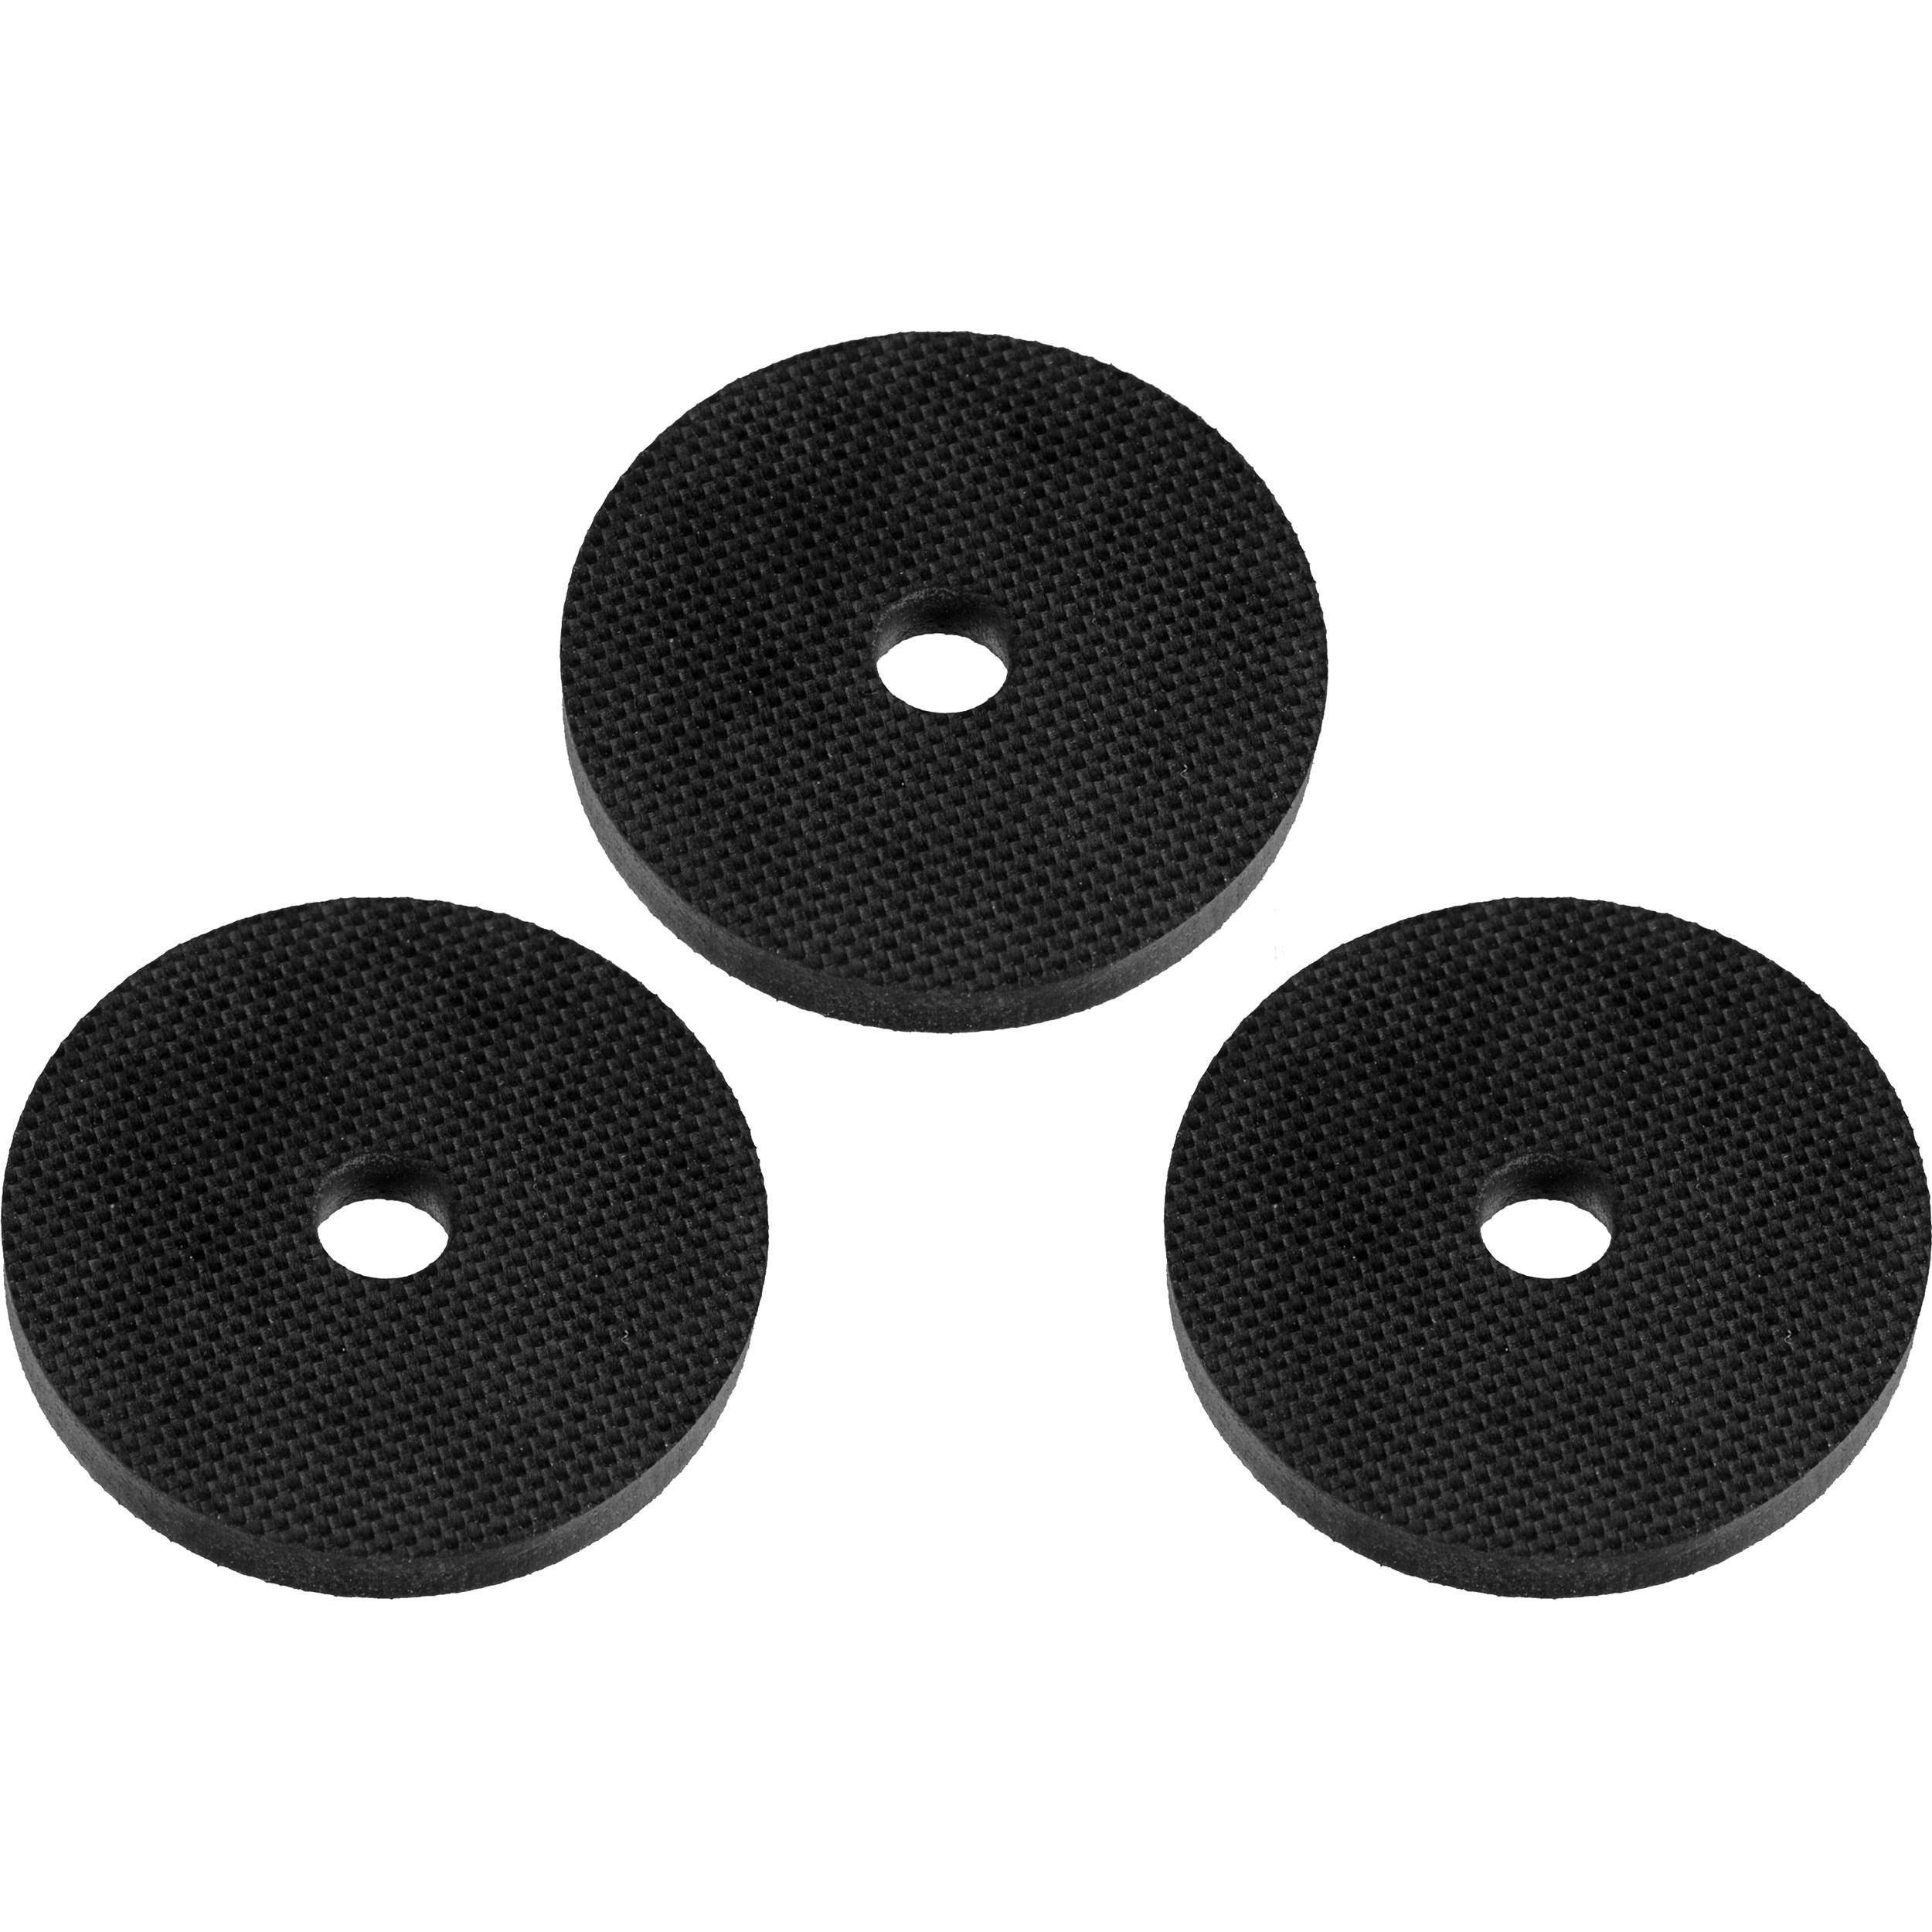 B C Washer ~ Custom slr c loop replacement washers set of clwasher b h